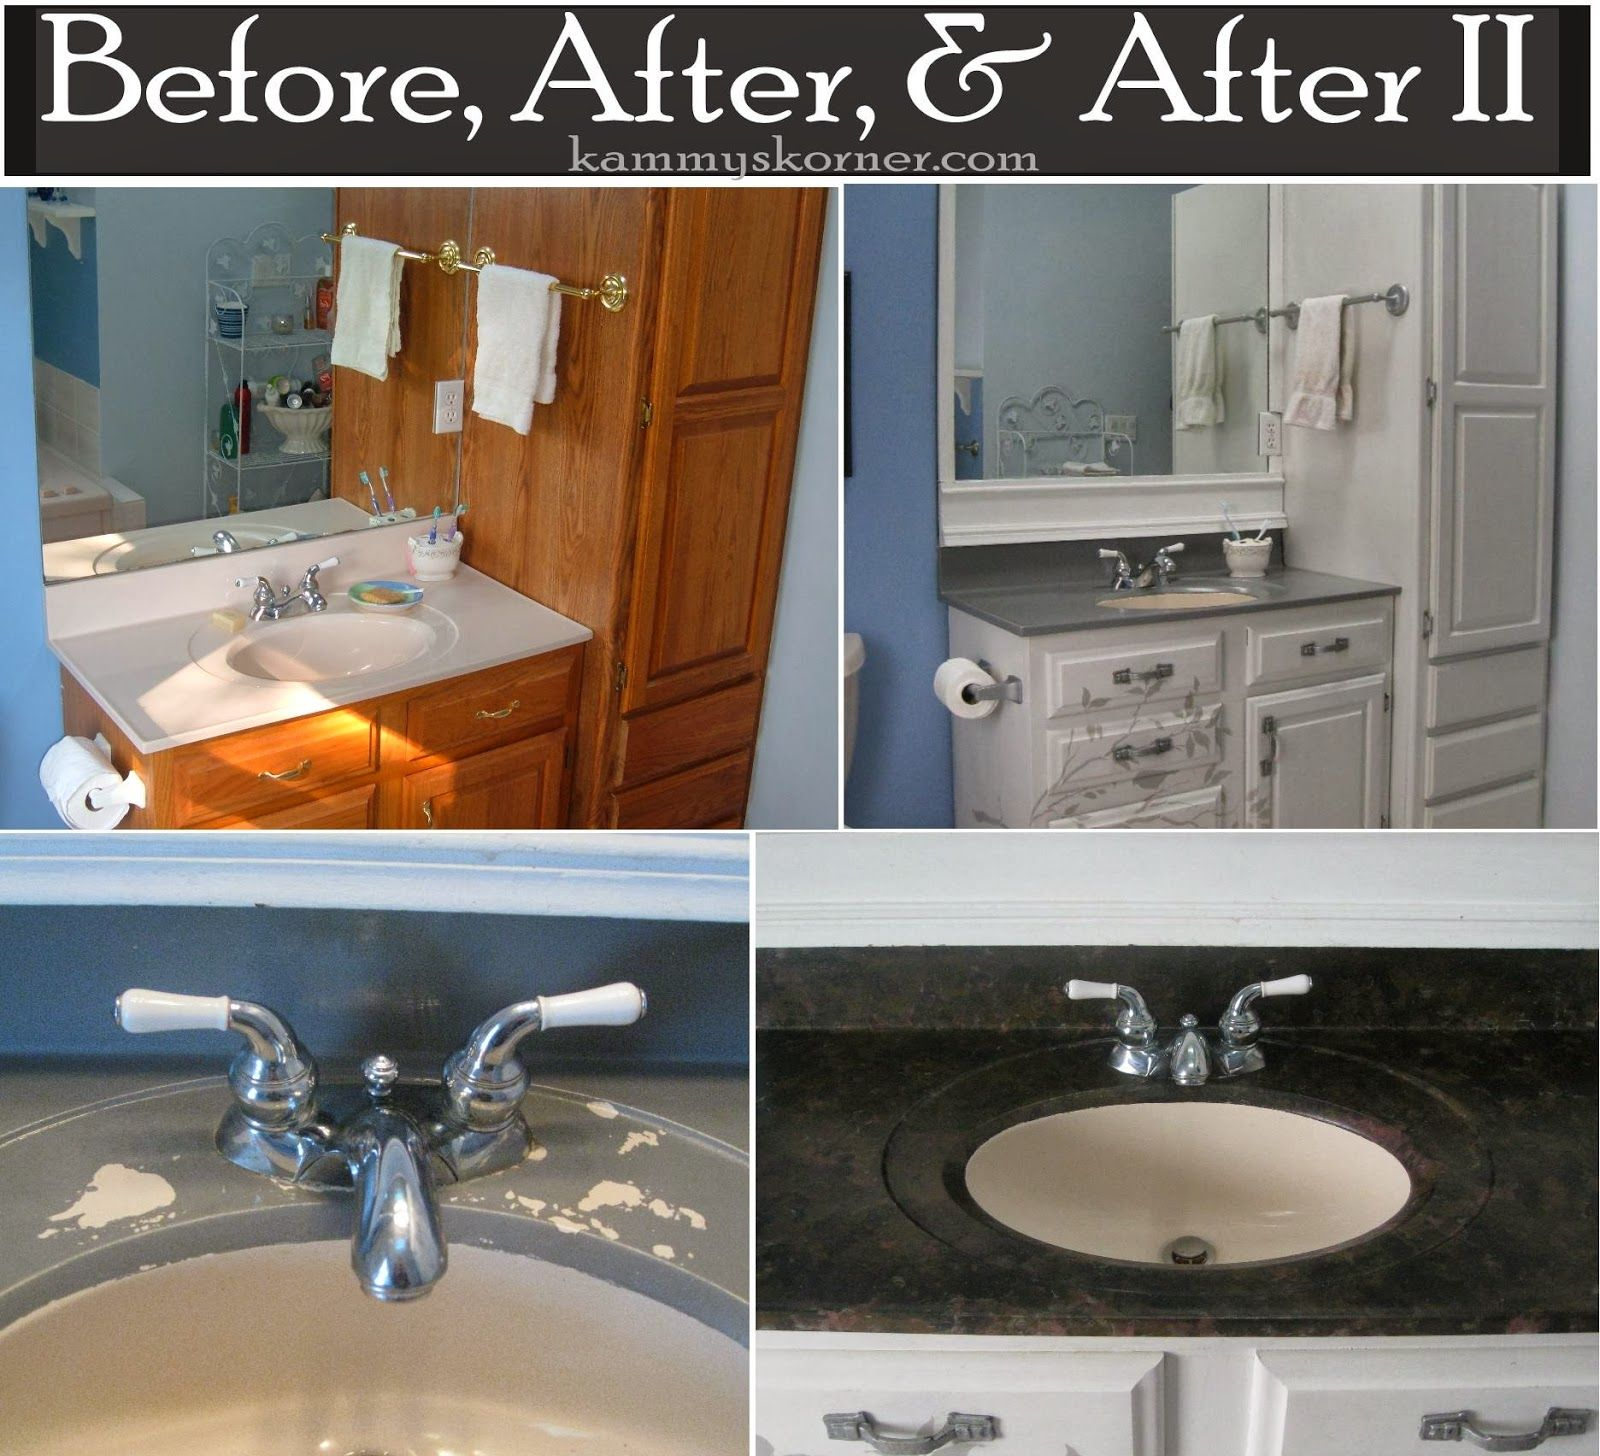 Painting A Porcelain Vanity Countertop New And Improved With